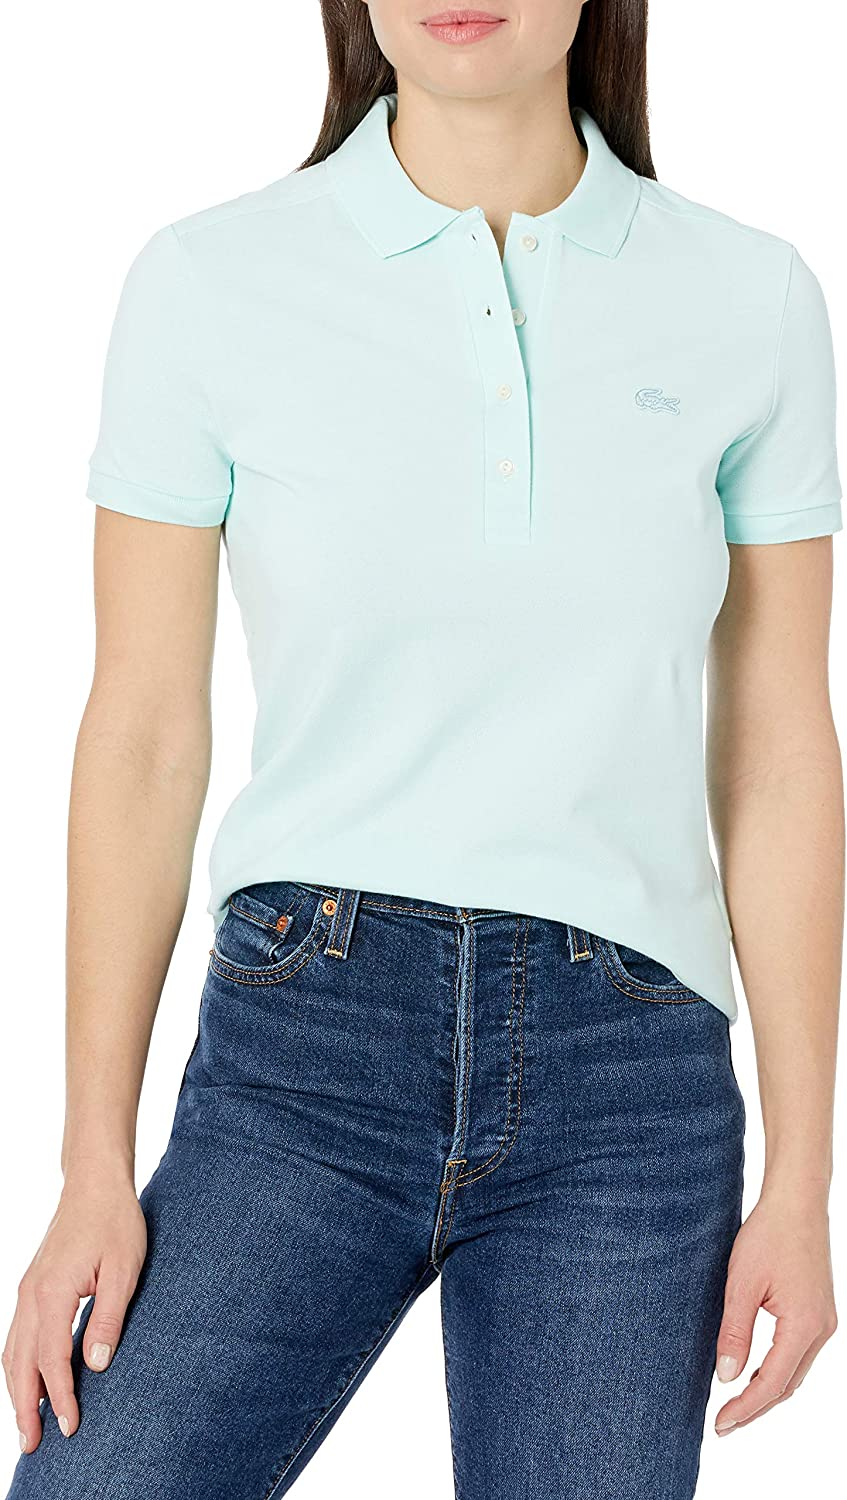 Lacoste Women's Short Sleeve Slim Stretch Chicago Mall Pique Shirt quality assurance Polo Fit